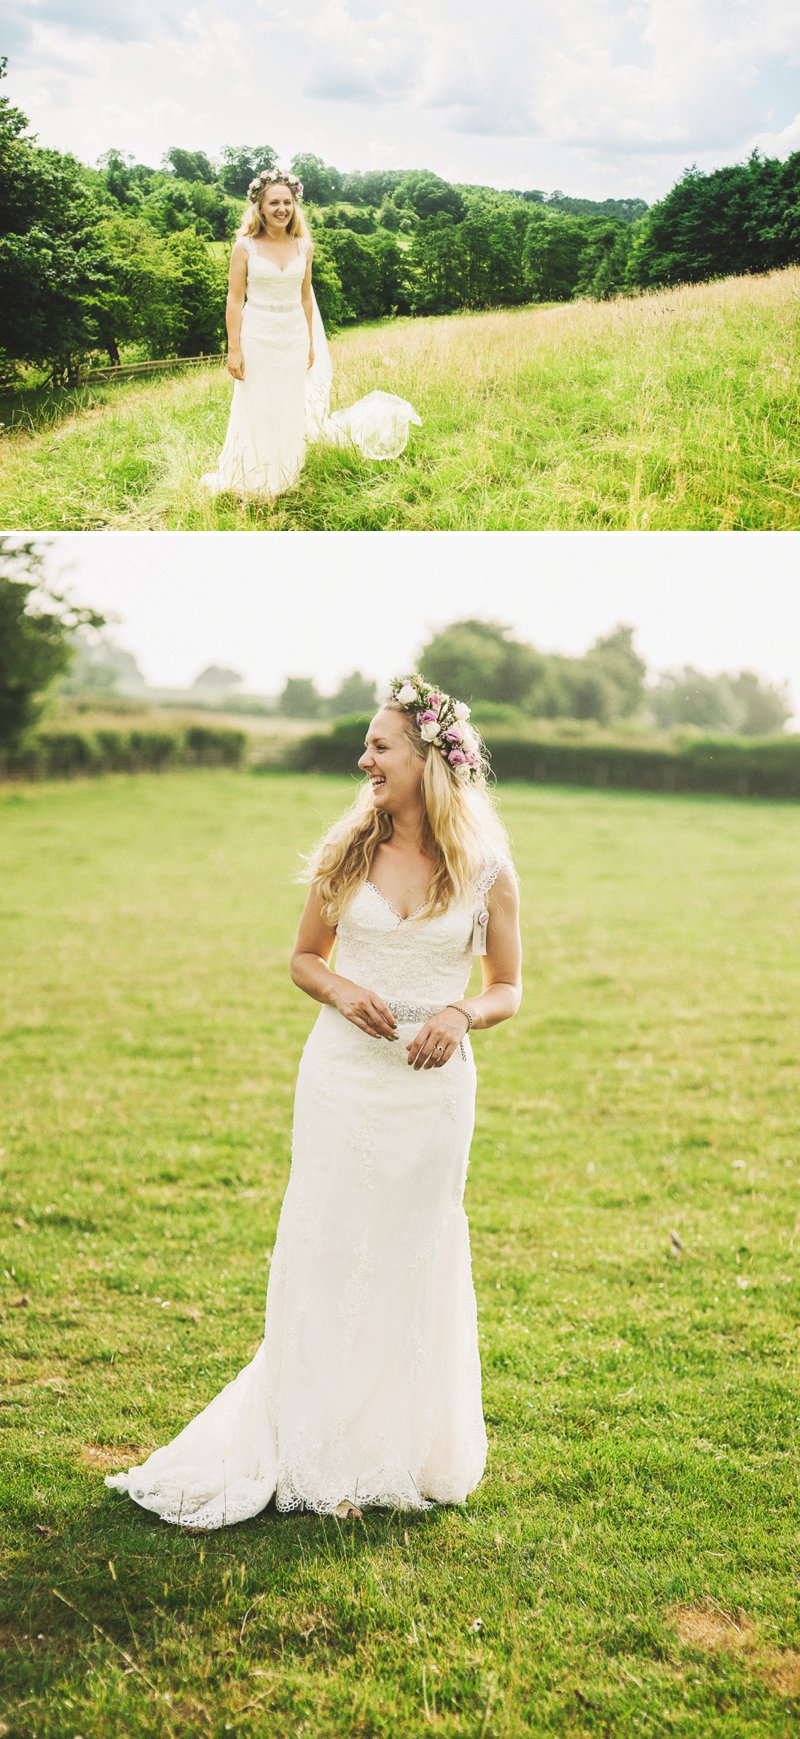 Rustic Marquee Wedding At Mallard Grange In Yorkshire With A Dusty Pink, Cream And Grey Colour Scheme With Bride In Gown From Eternity Bridal With A Vintage VW Camper Van 10